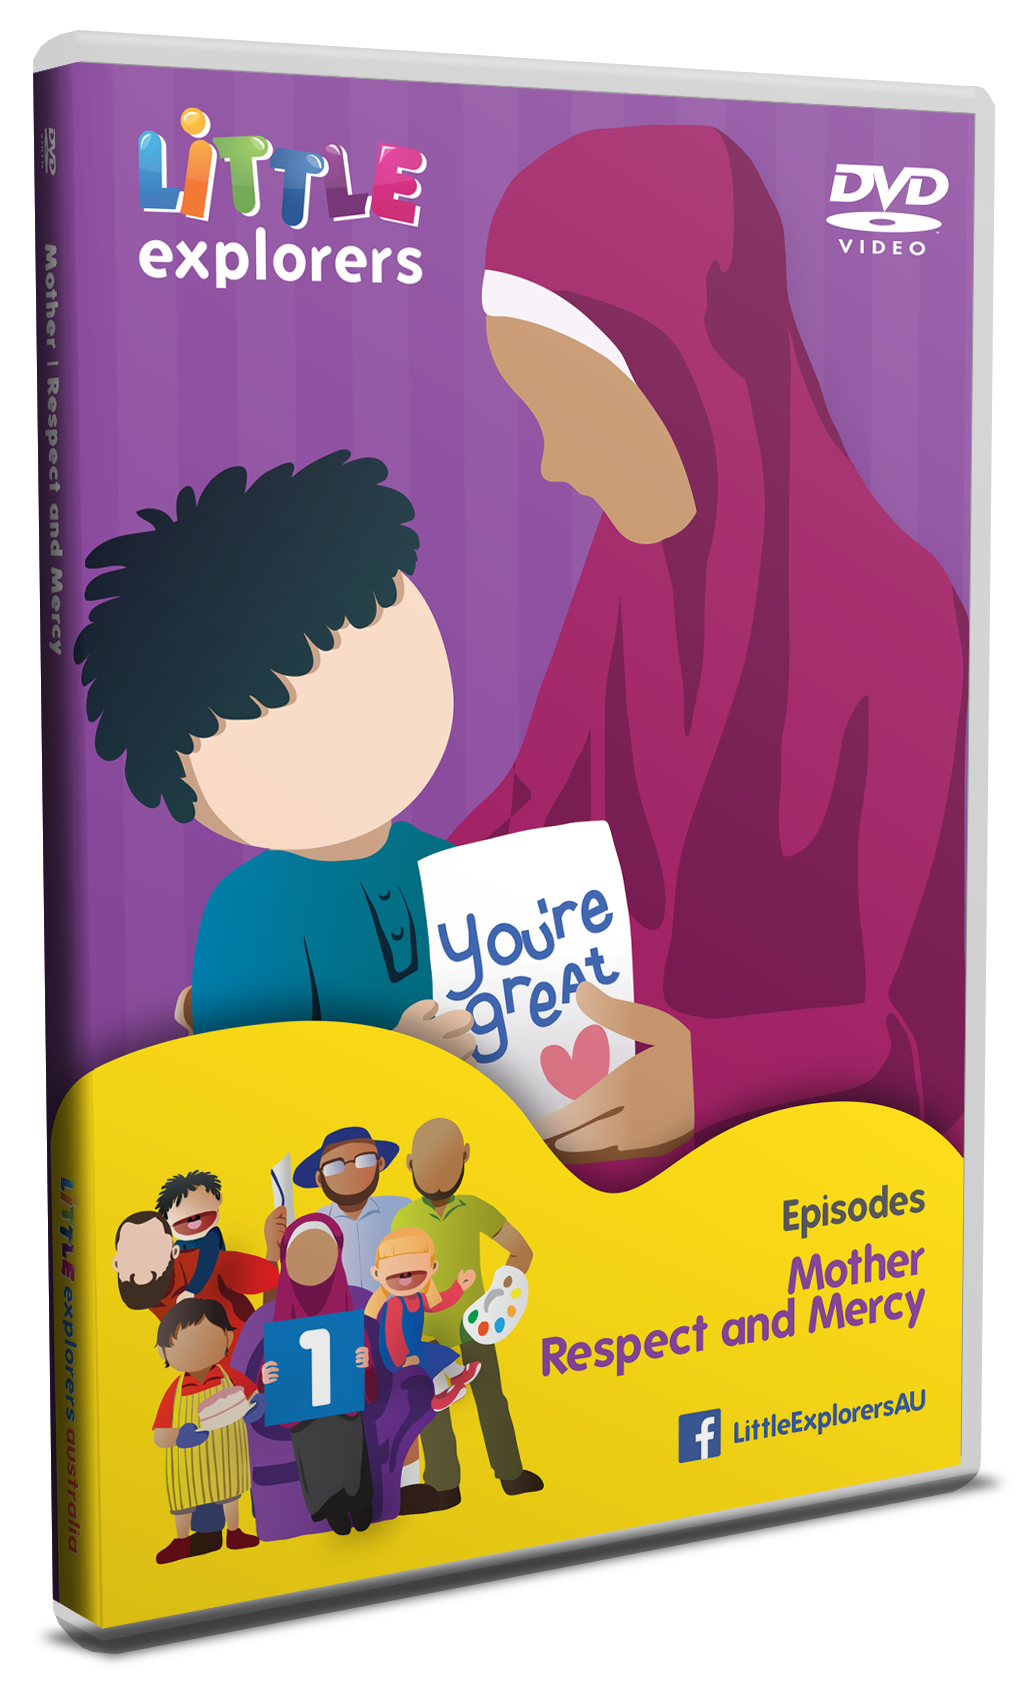 Mother clipart respect mother. Dvd and mercy little